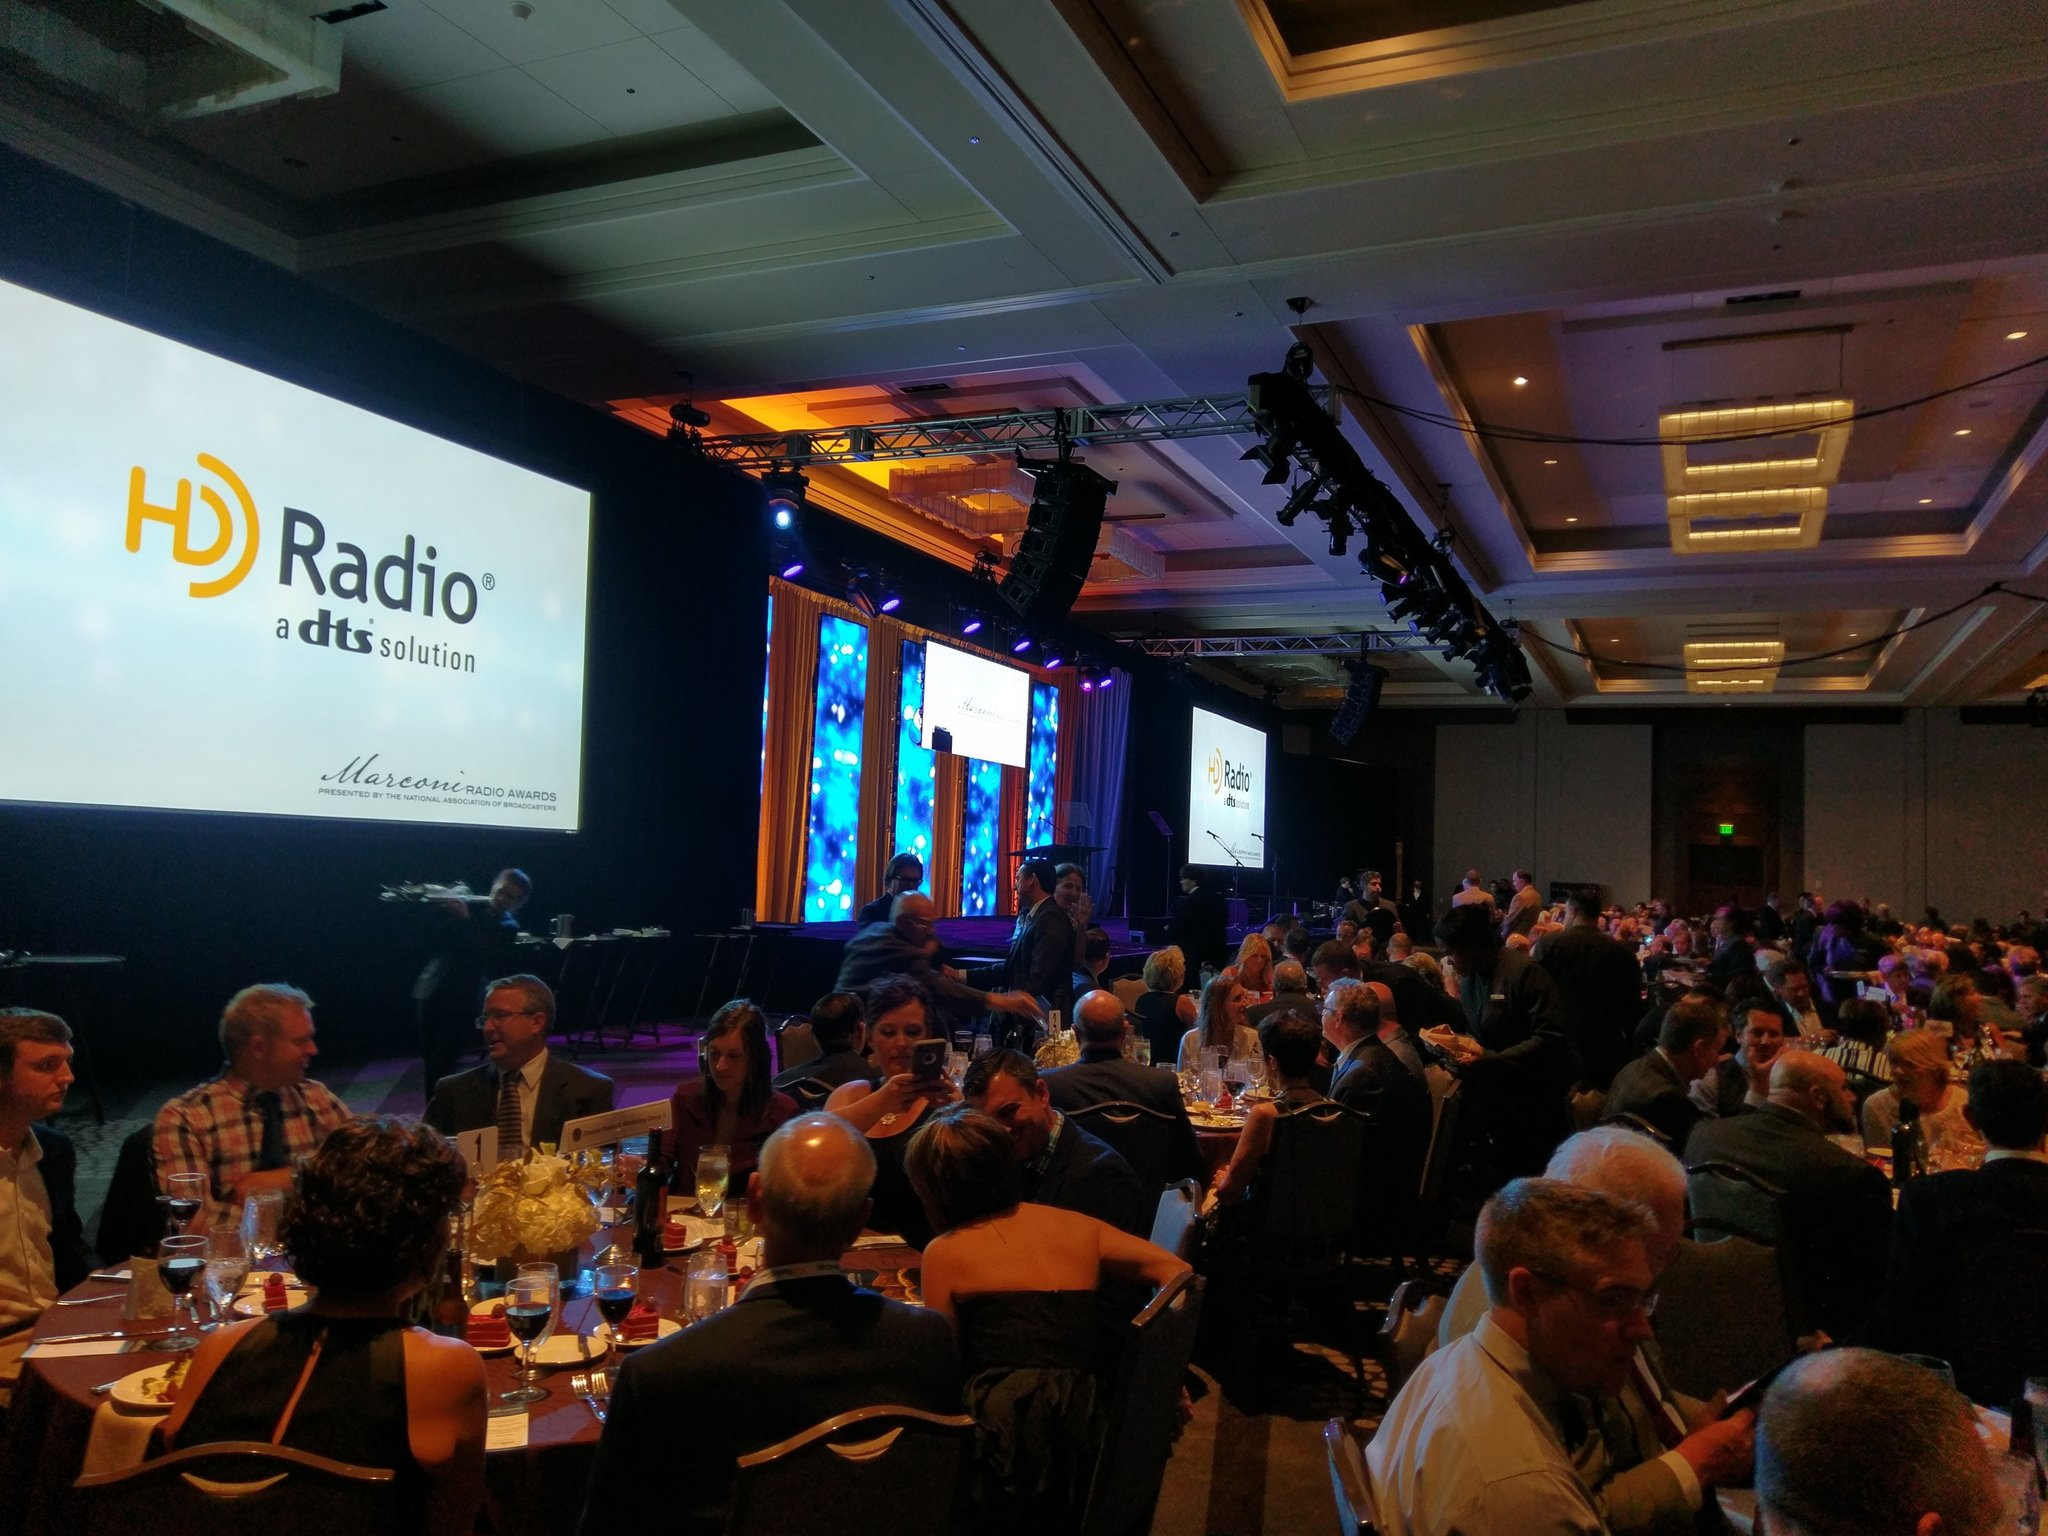 It's a packed house for the NAB Marconi Radio Awards Dinner & Show at #RadioShow2016! https://t.co/5bpUYlpVwf